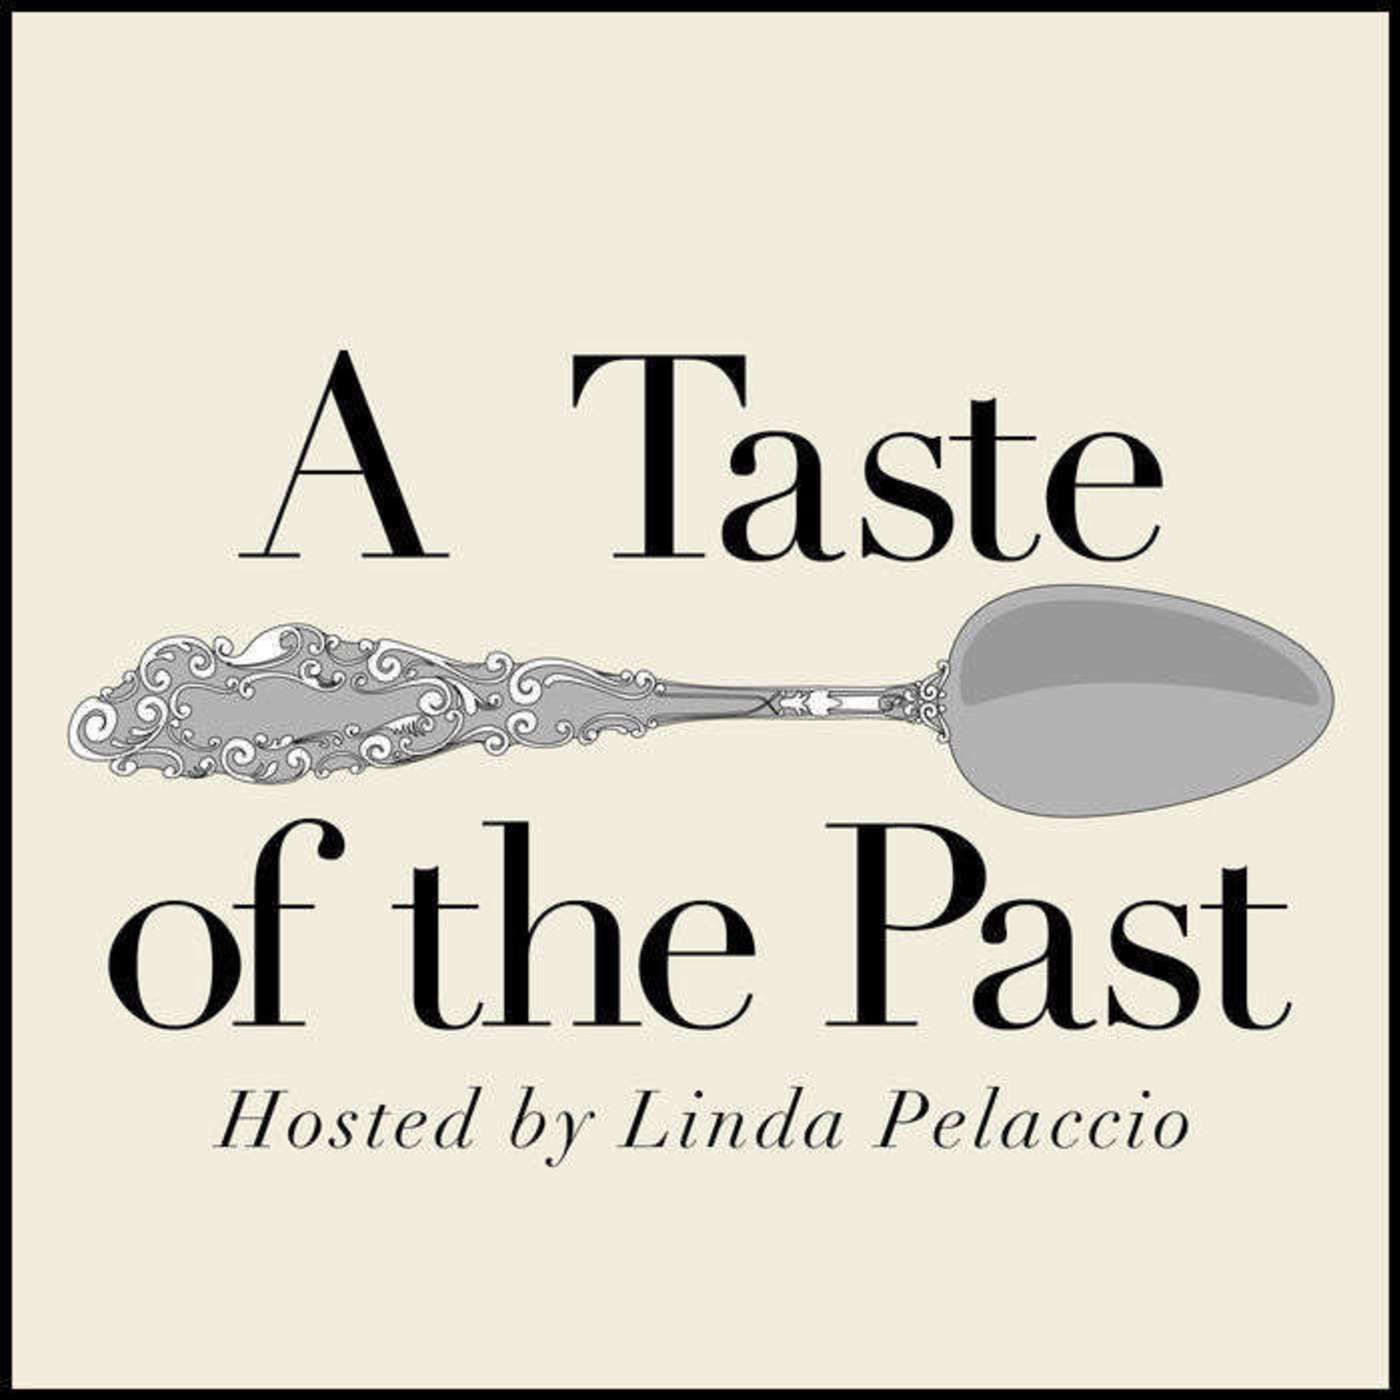 Episode 212: The Jemima Code: Two Centuries of African-American Cookbooks